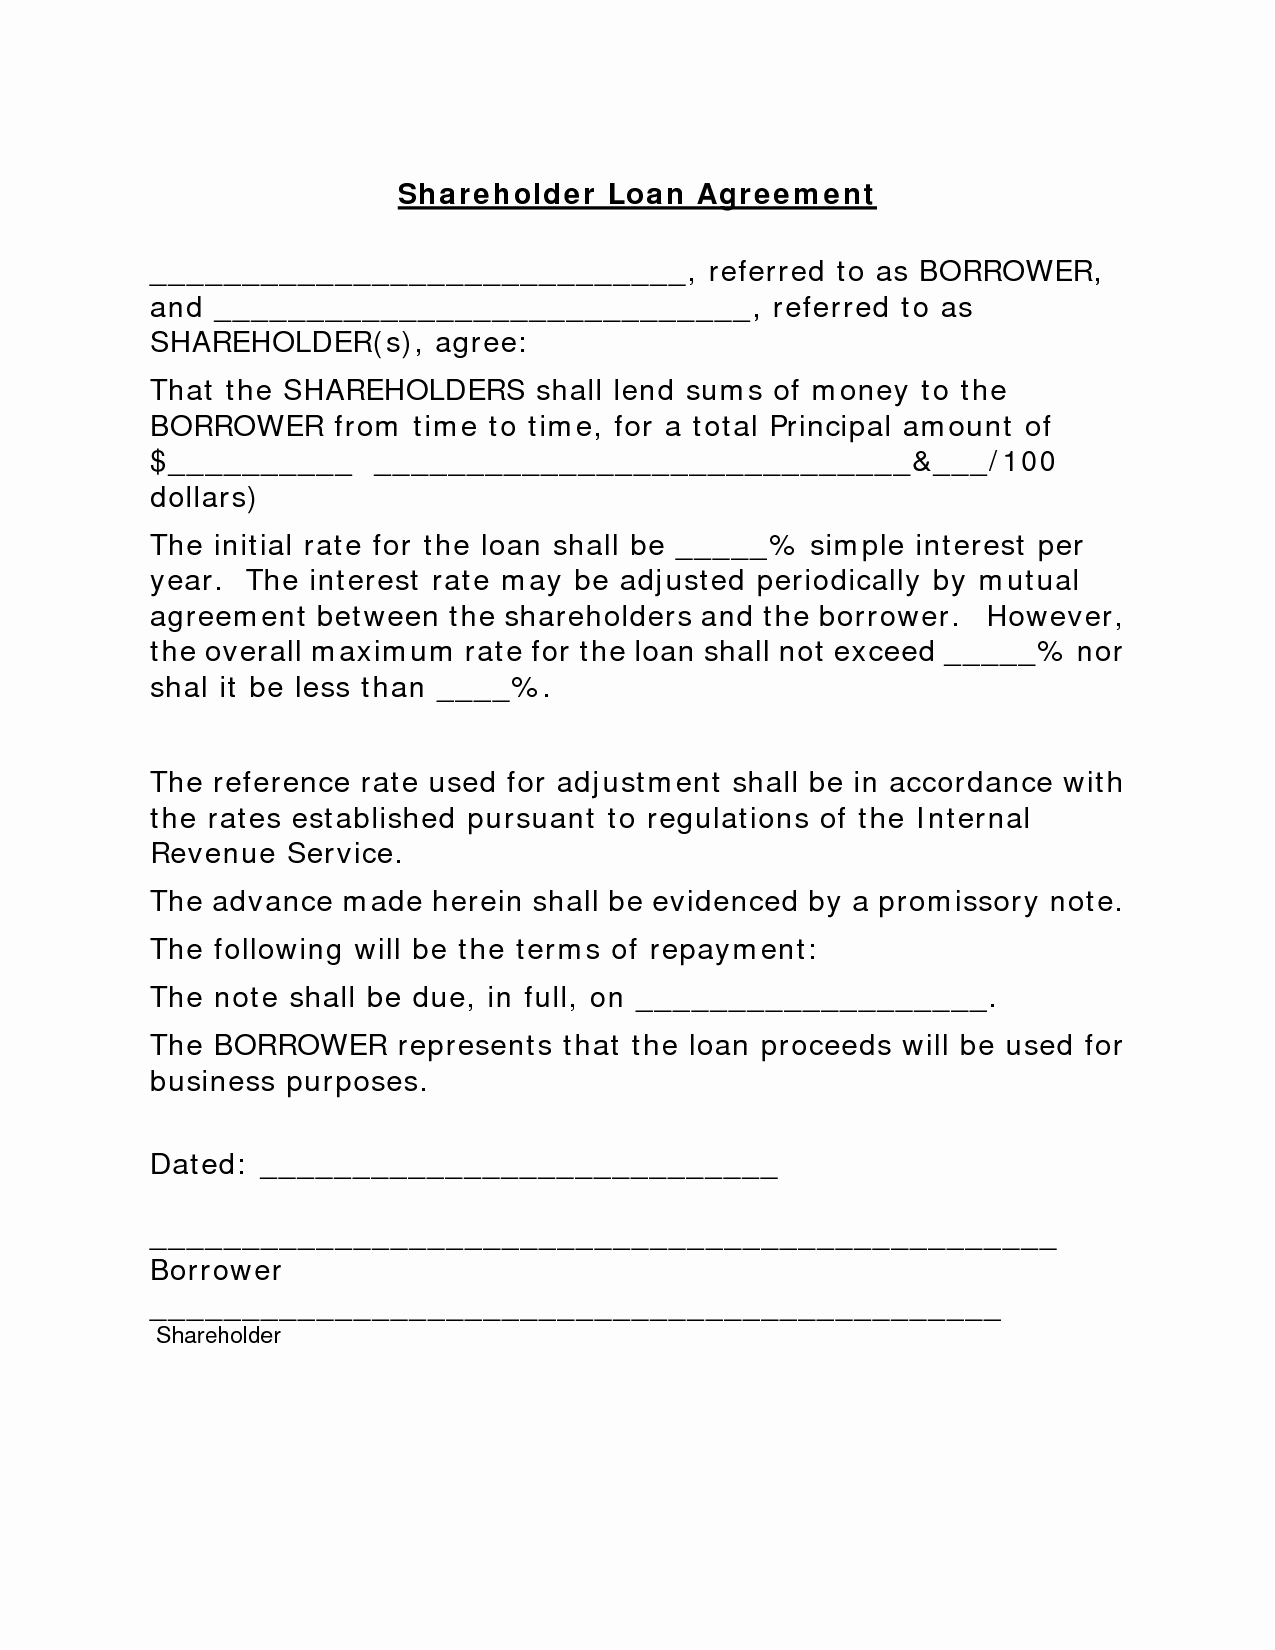 Personal Contract Templates Inspirational Sample Simple Personal To Simple Personal Loan Agreement Template